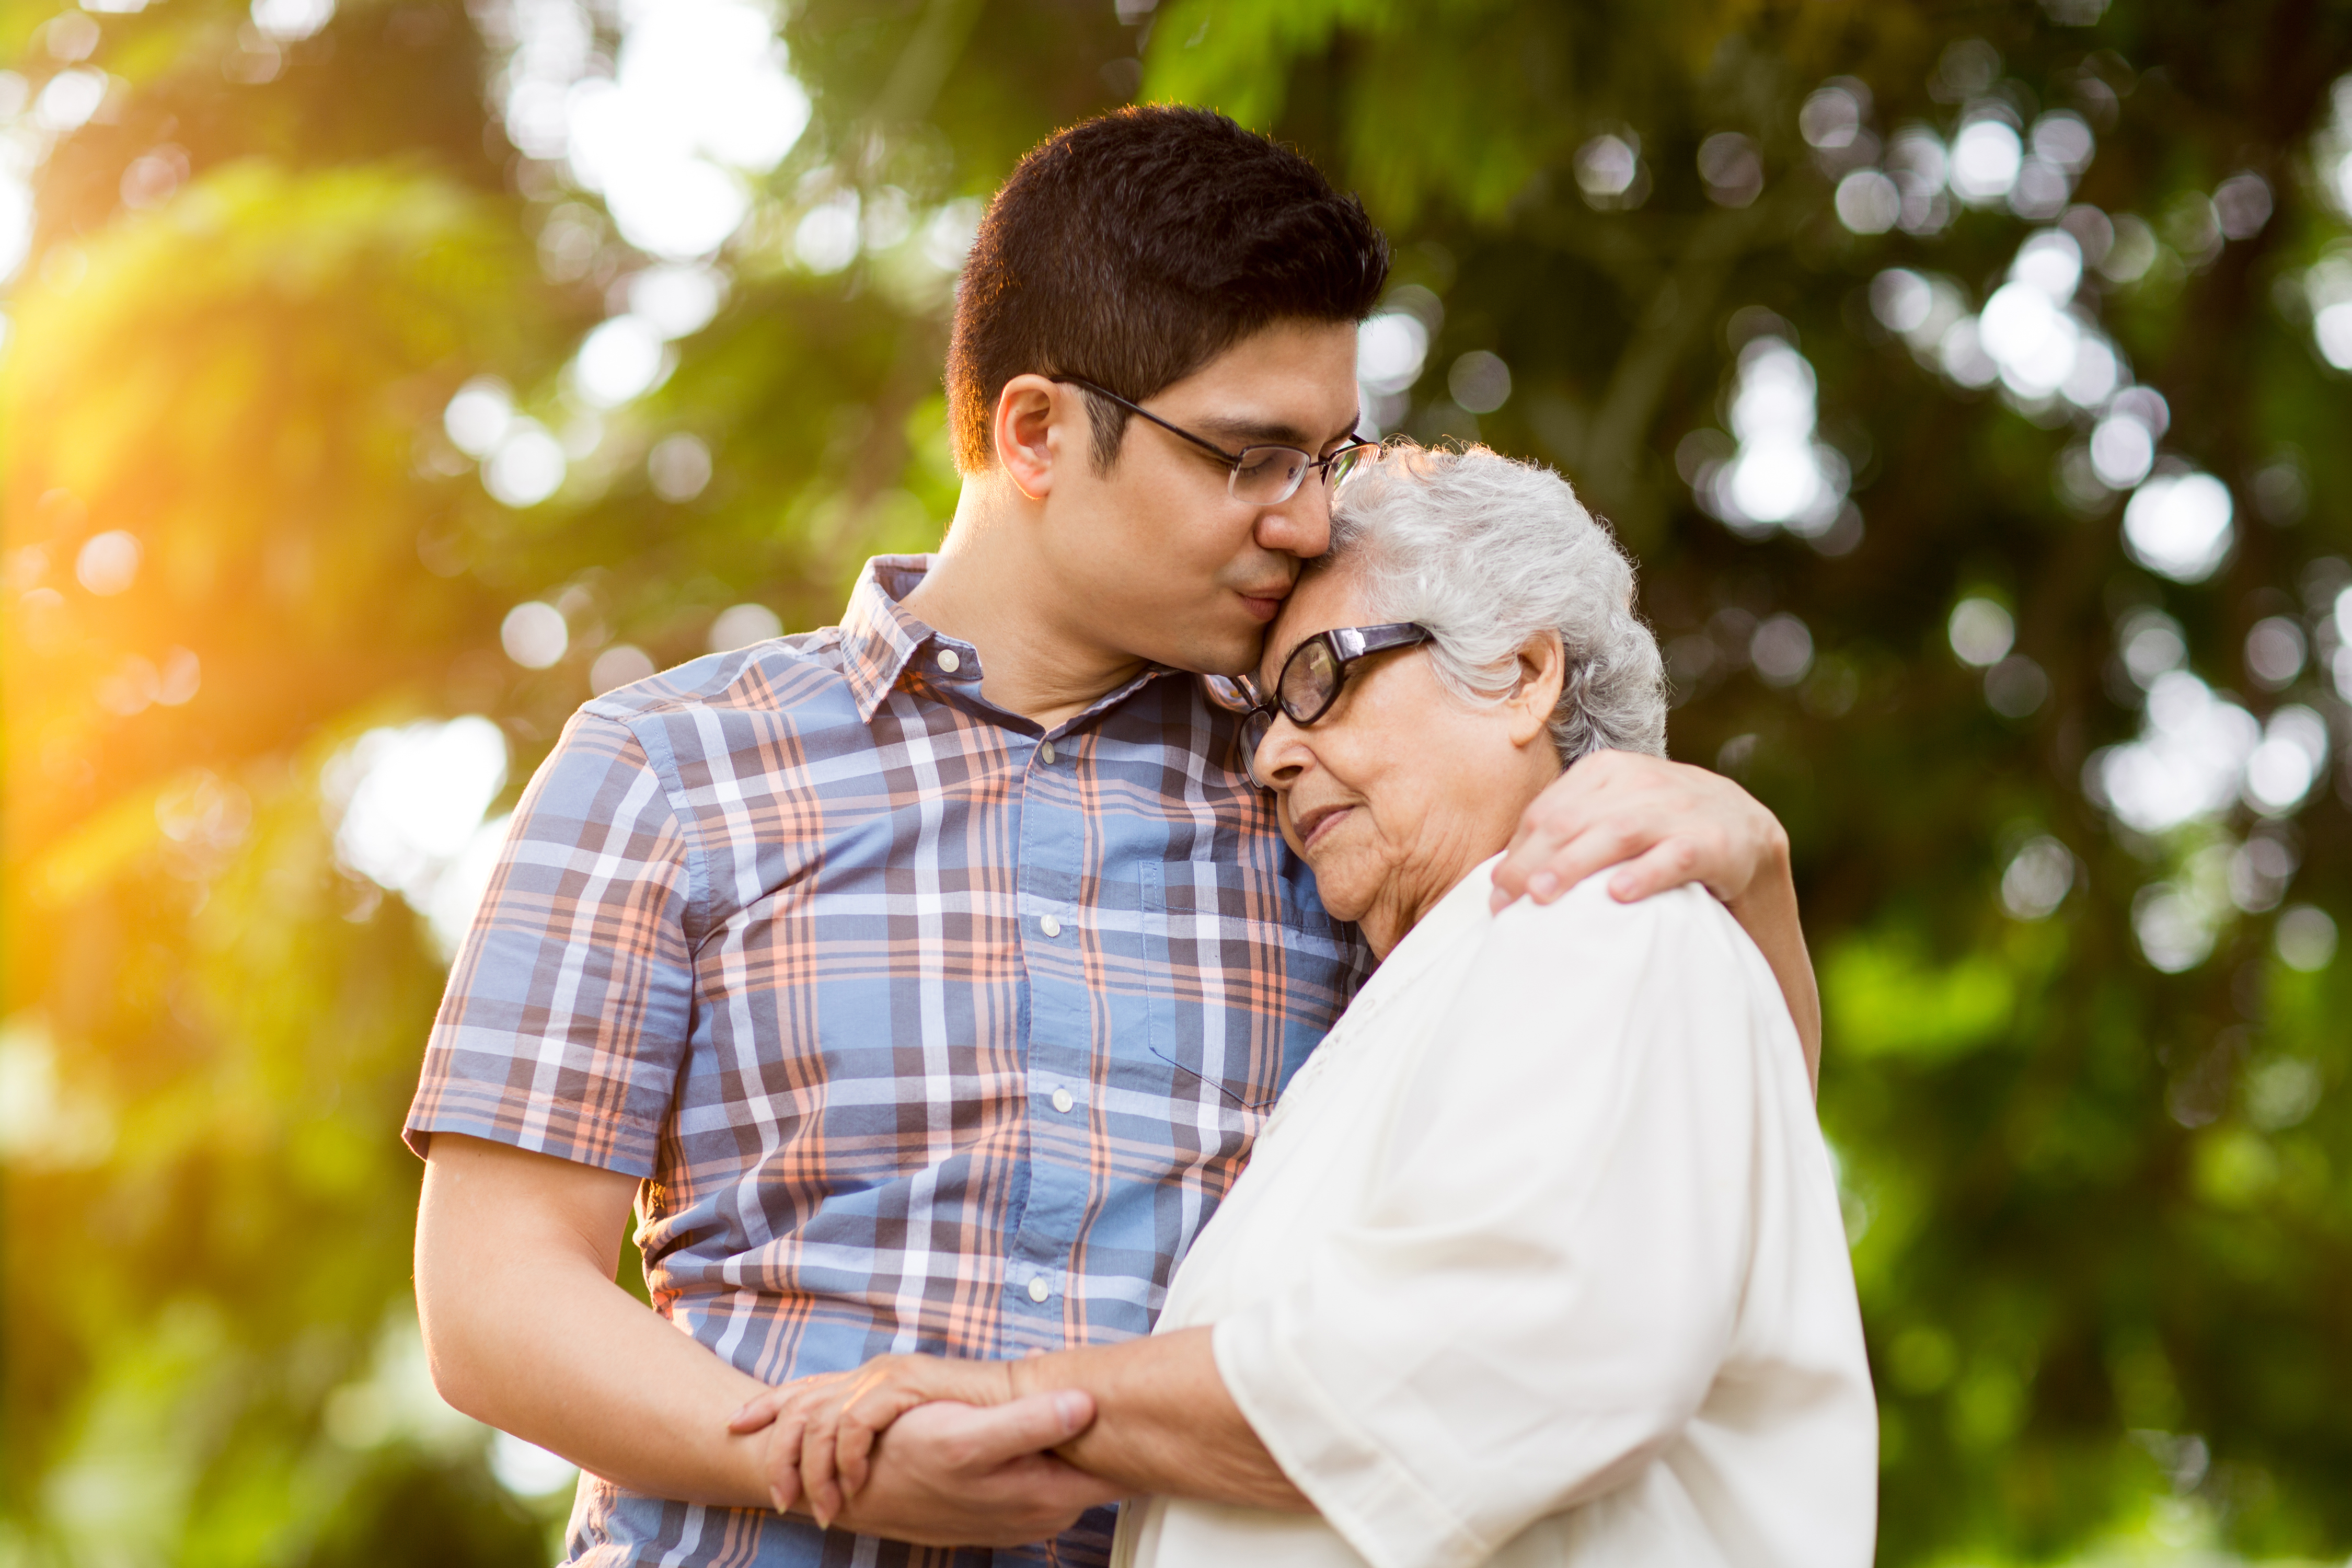 Latin grandson and grandmother embracing with eyes closed